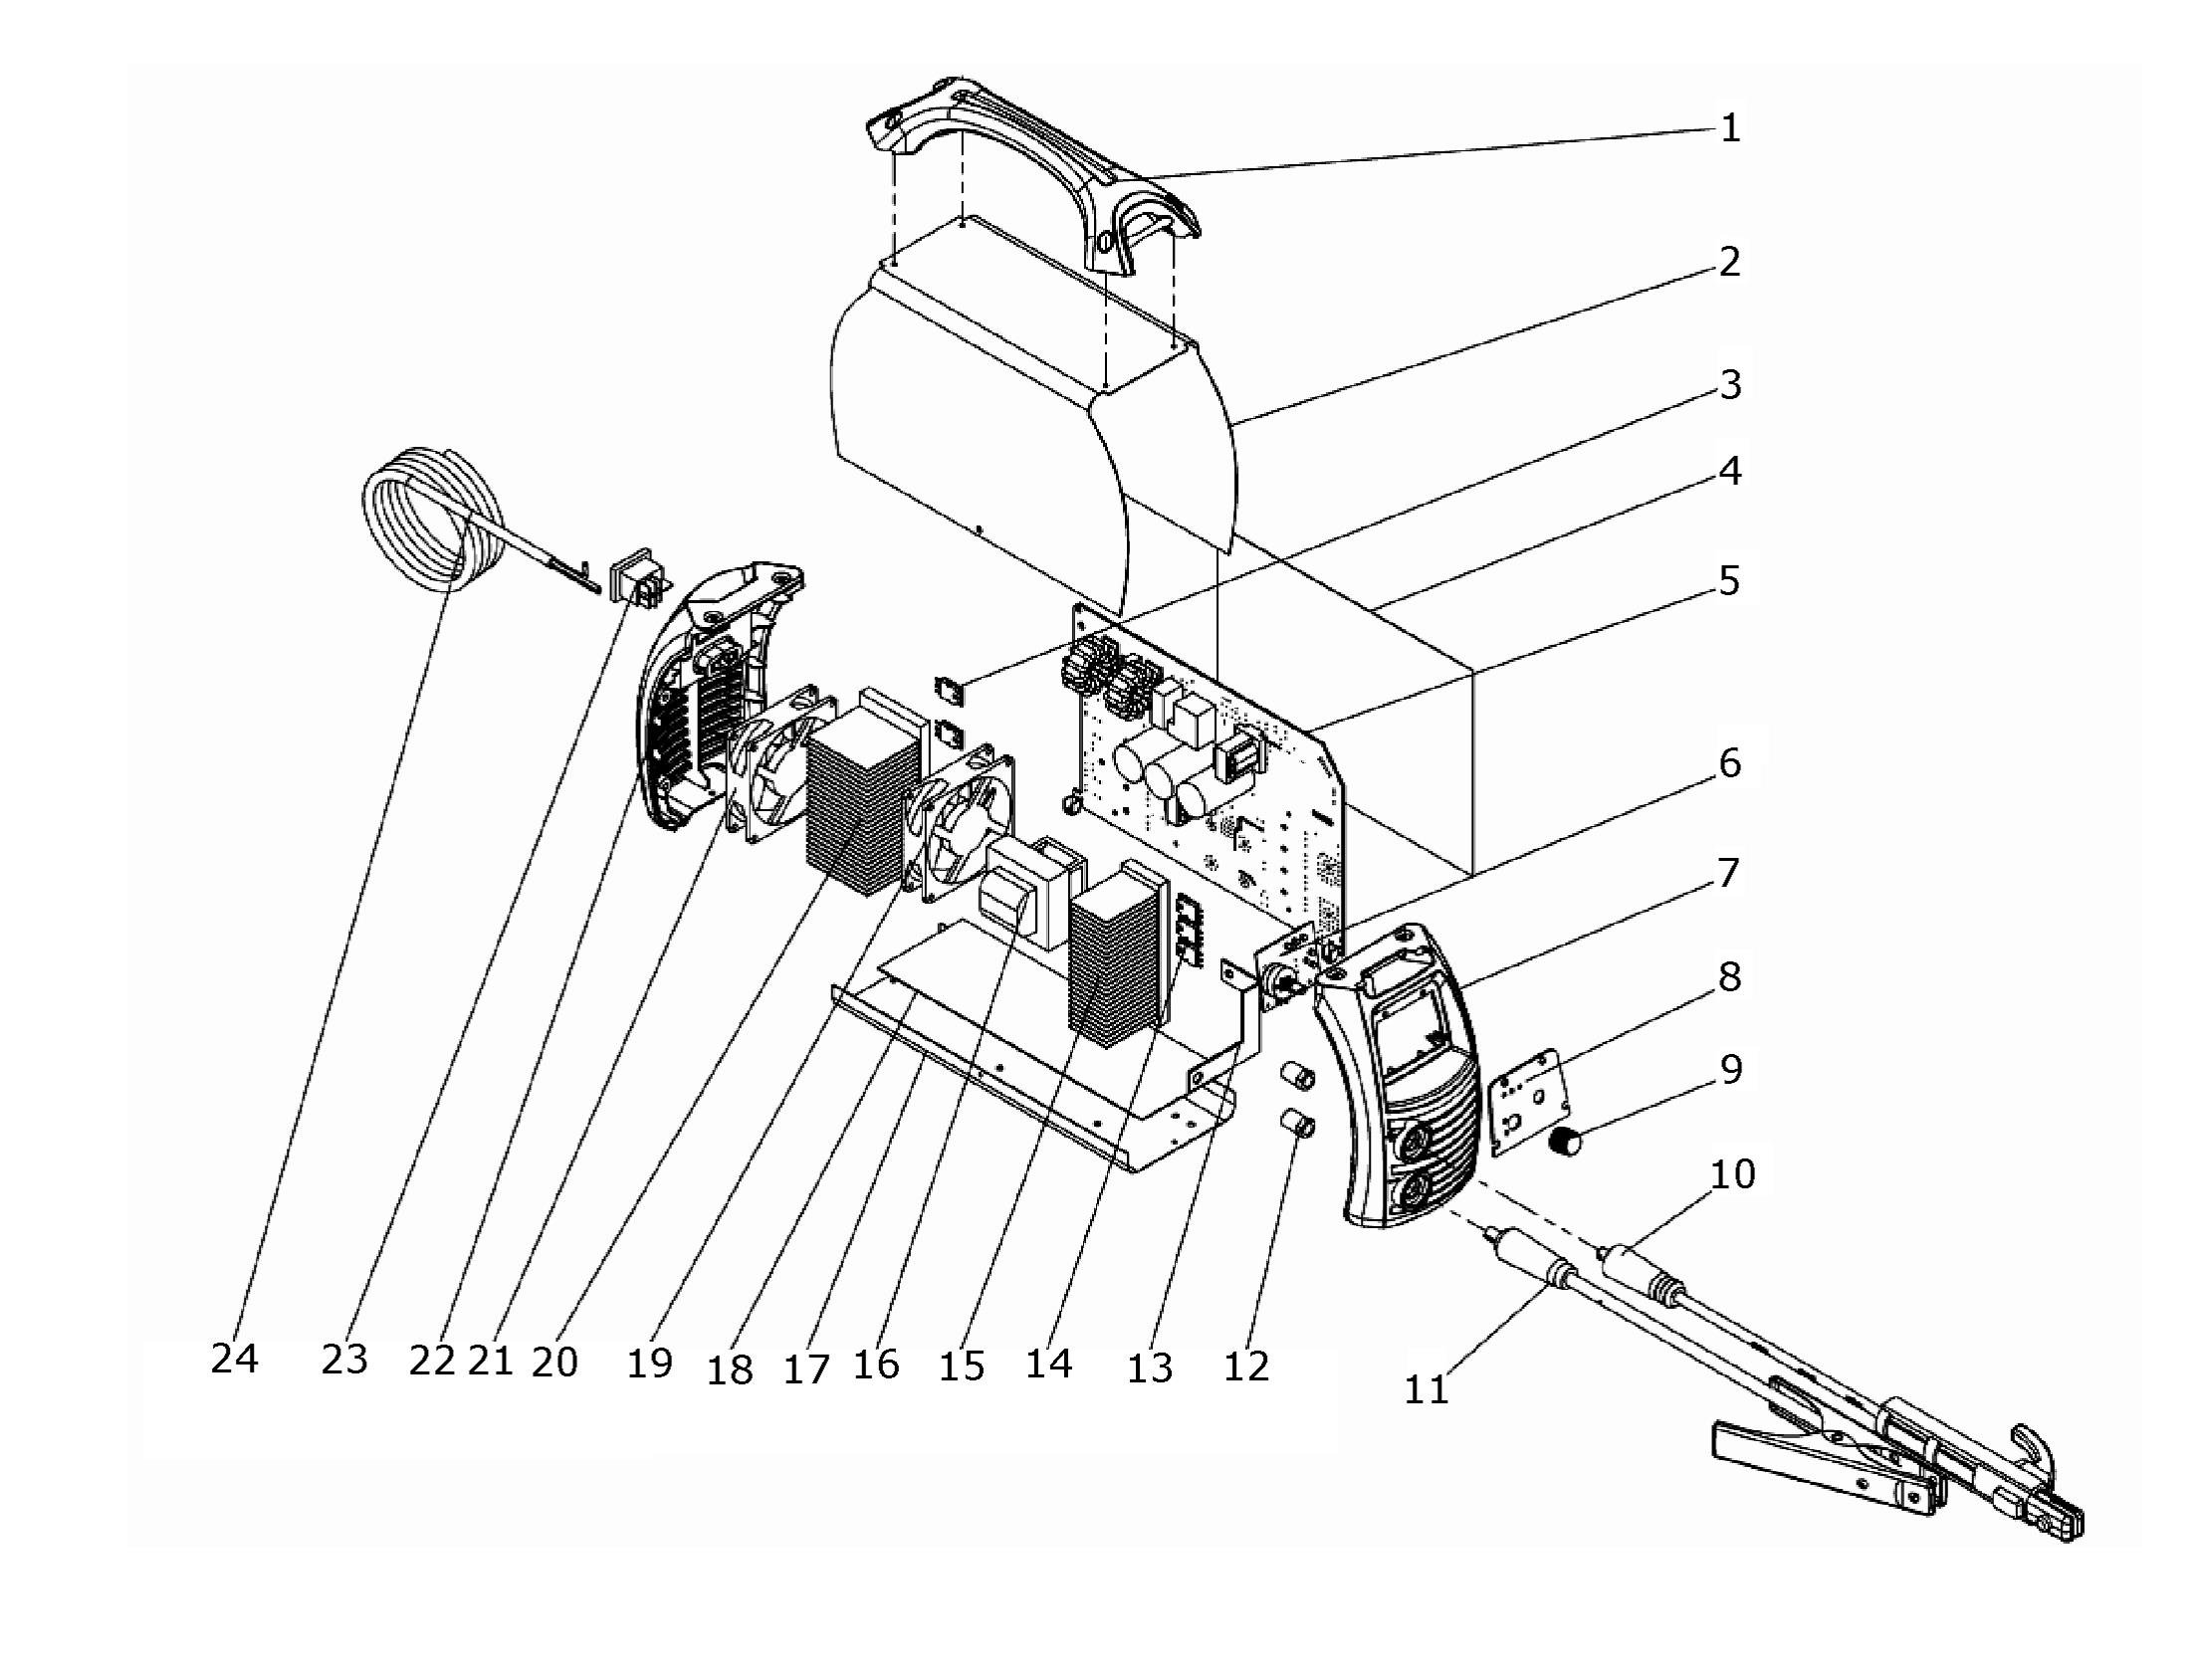 Lincoln Arc Welder Wiring Diagram Lincoln Tig Foot Control Wiring